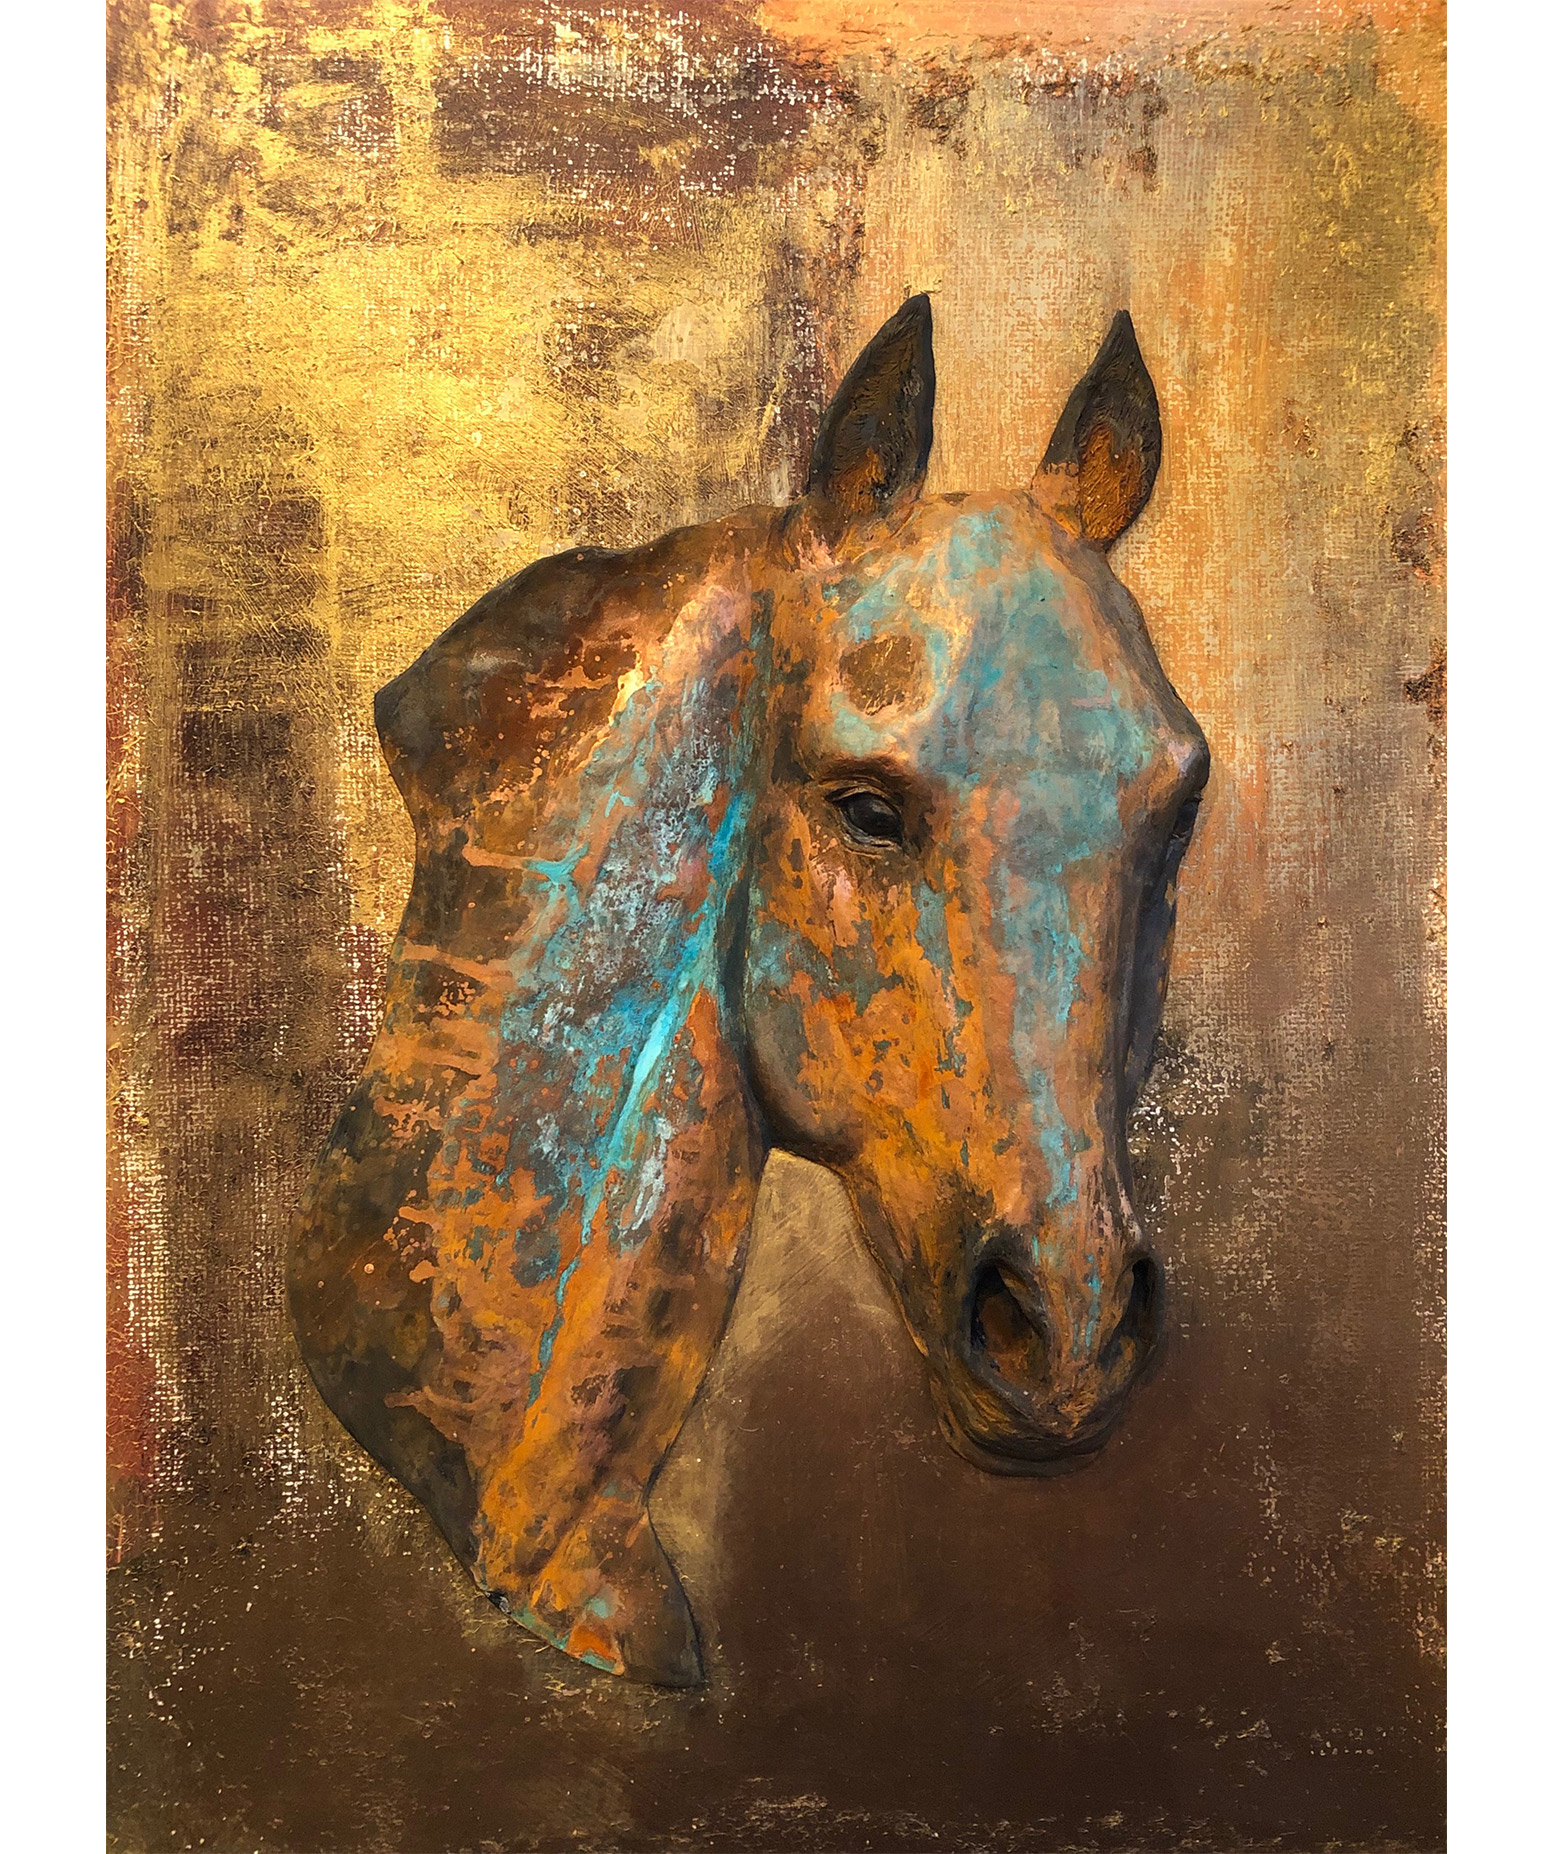 Rustic Equine Sculpture Painting